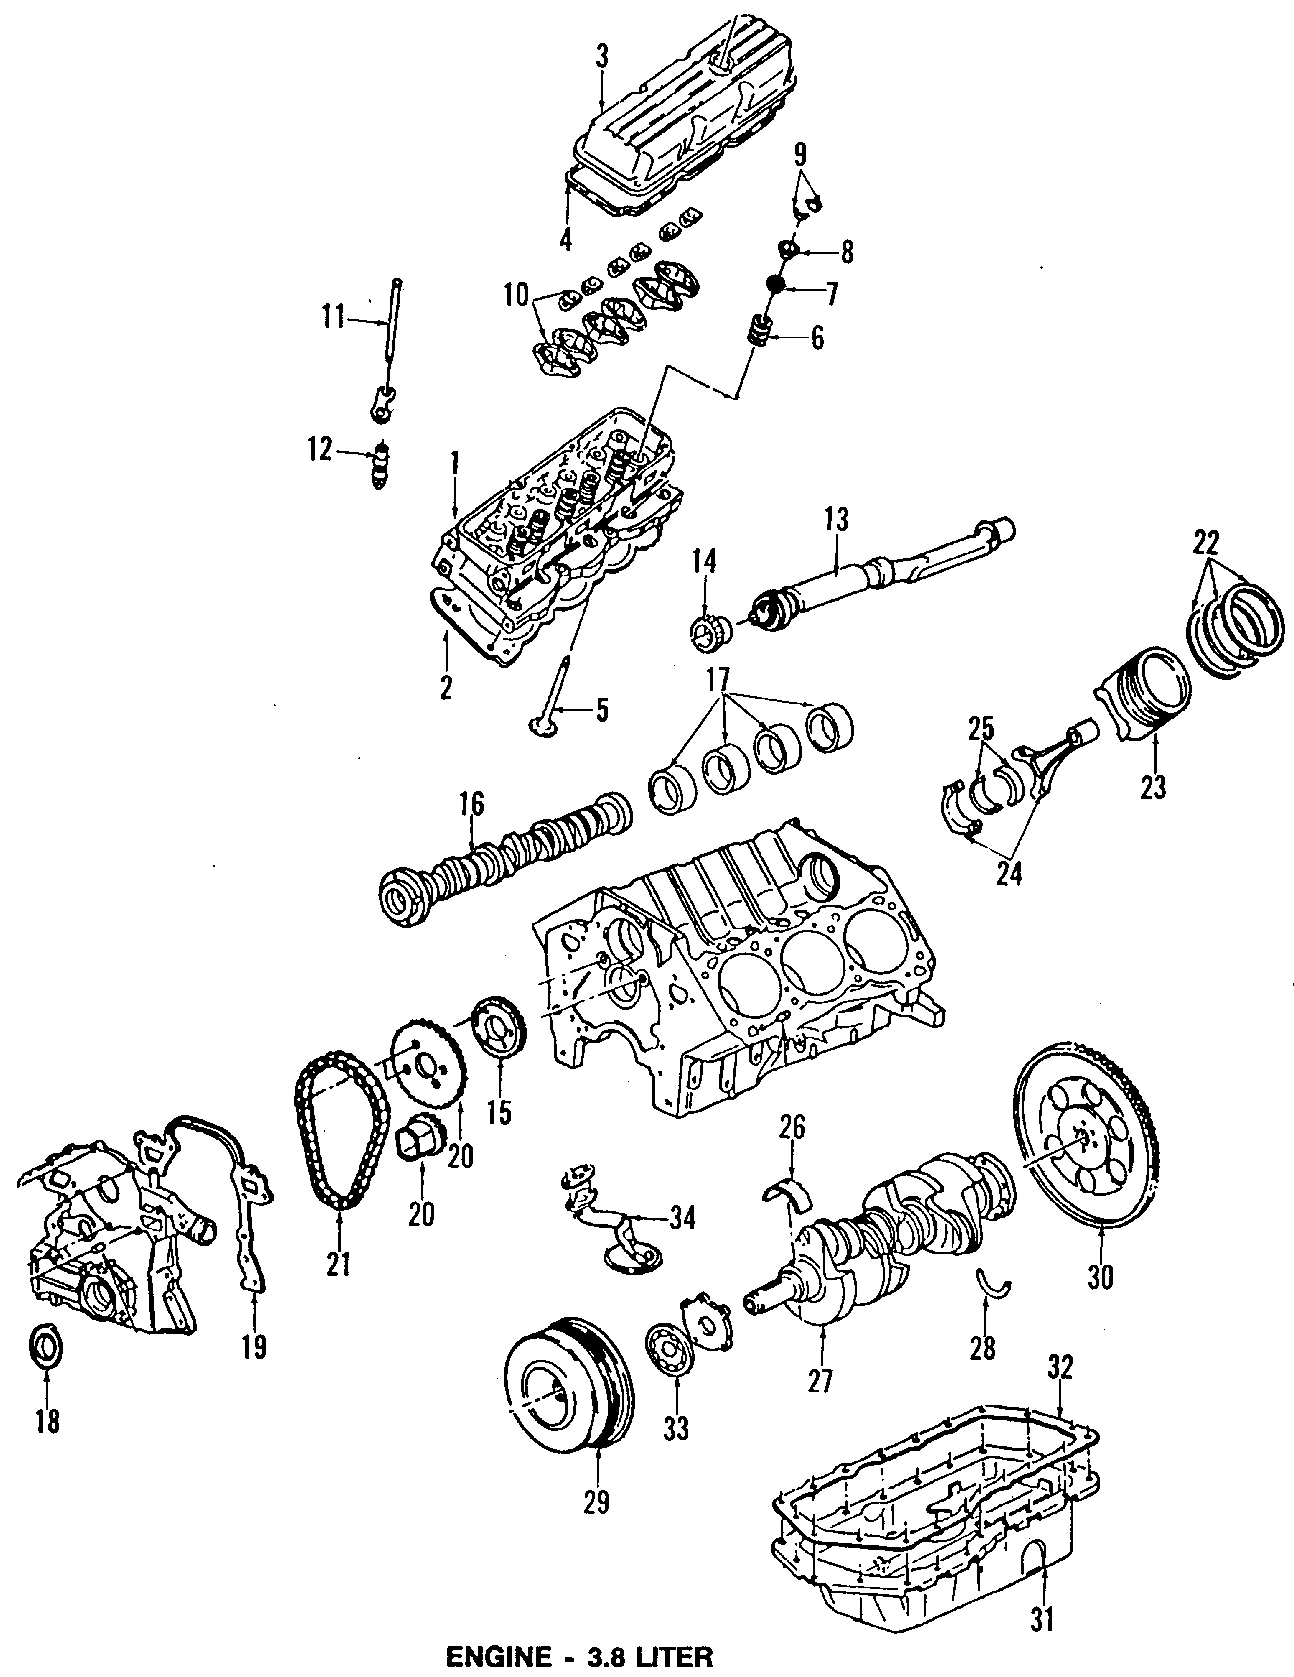 Pontiac Bonneville Crankshaft. Models, engine, output